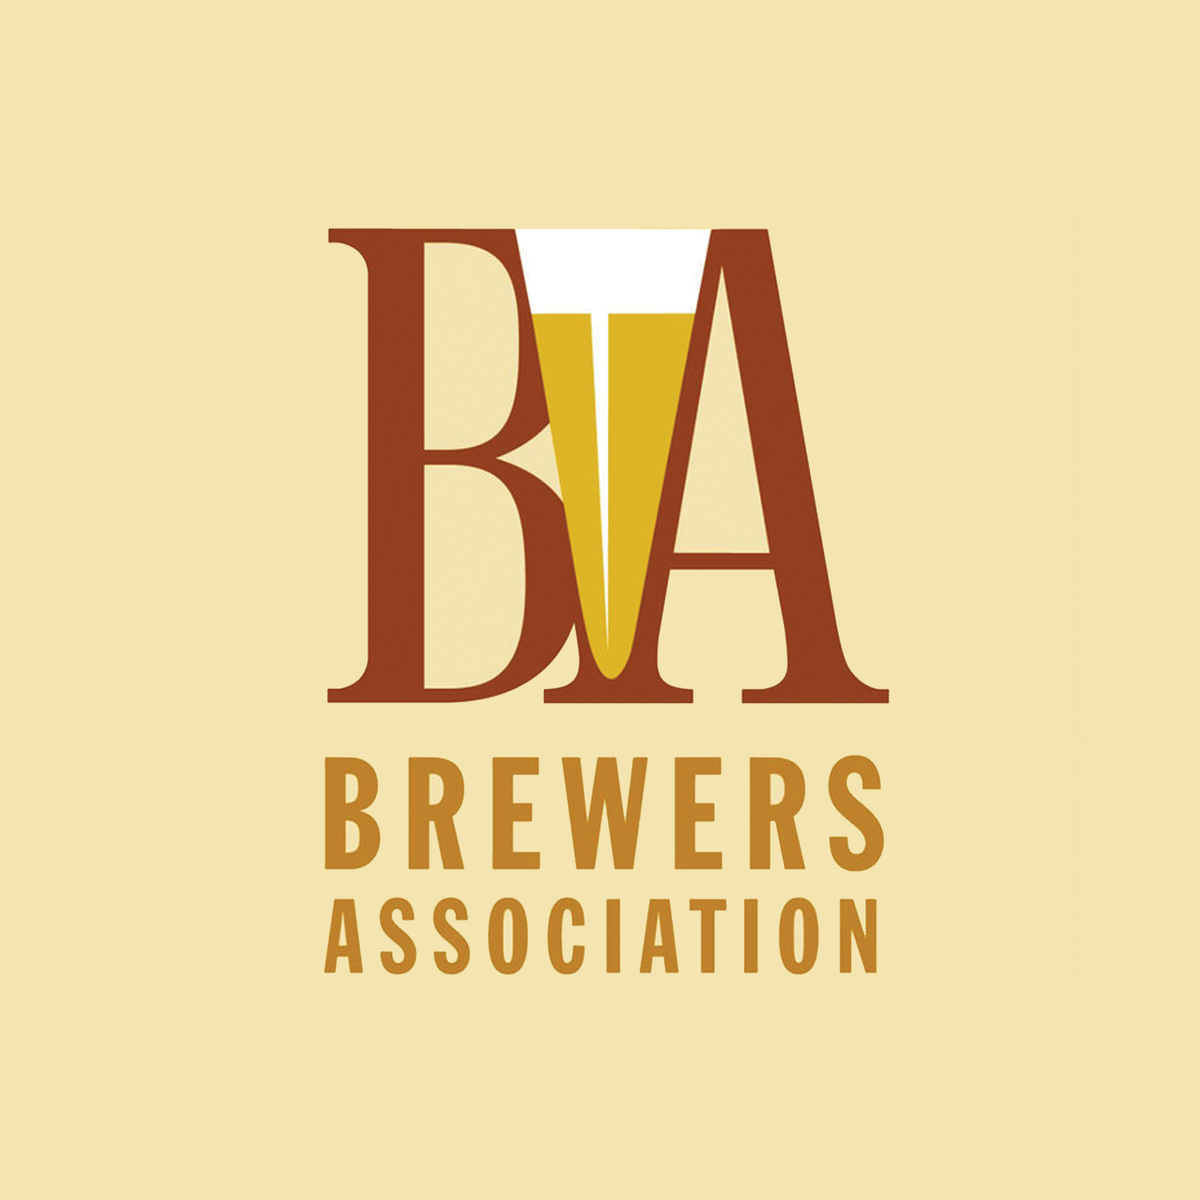 Brewers Association - The Common Beer Company